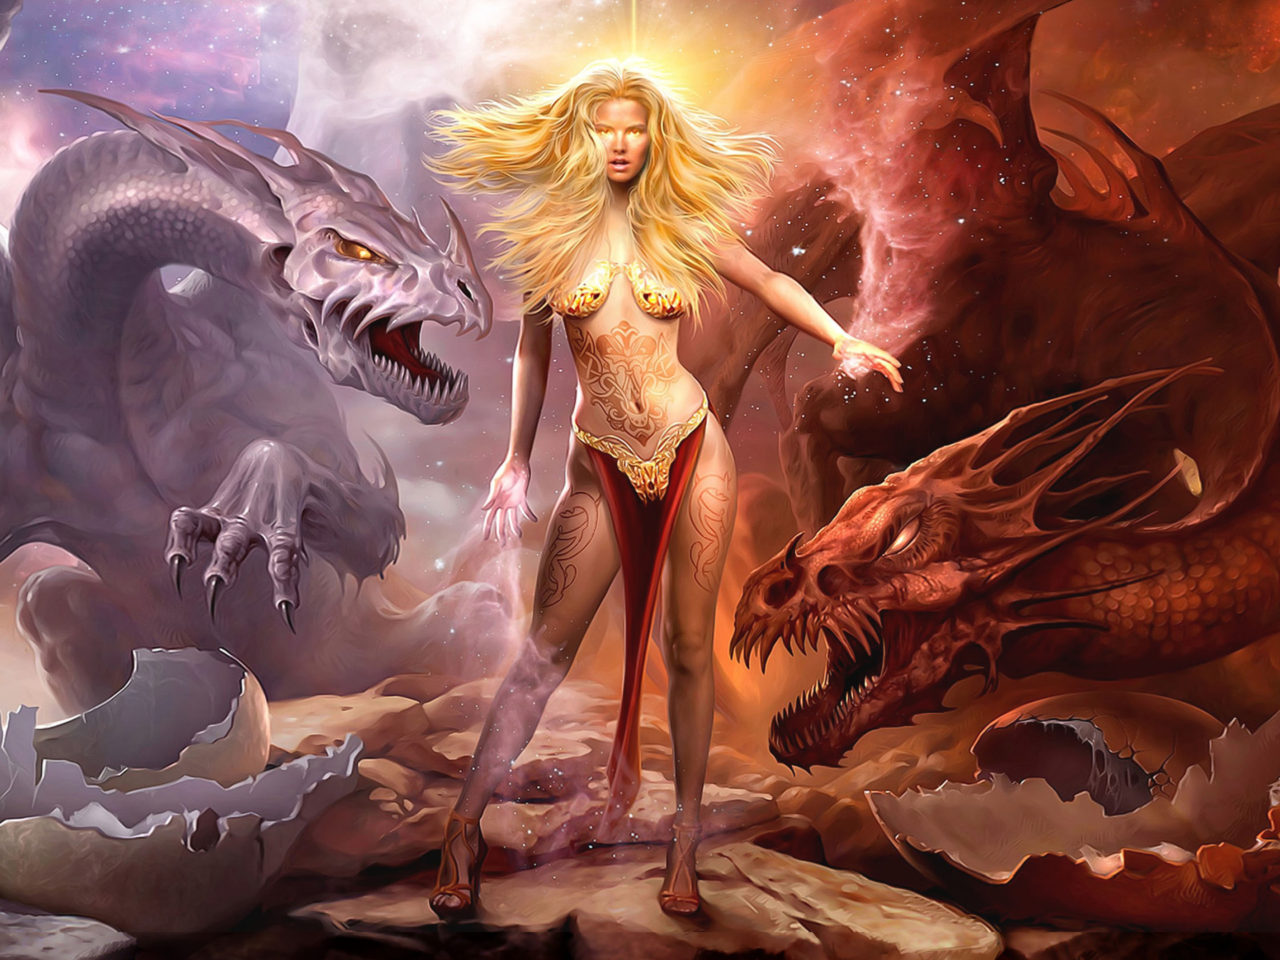 Girl Hd Desktop Wallpaper Queen Of Dragons Girl Dragons Fantasy Art Hd Wallpaper